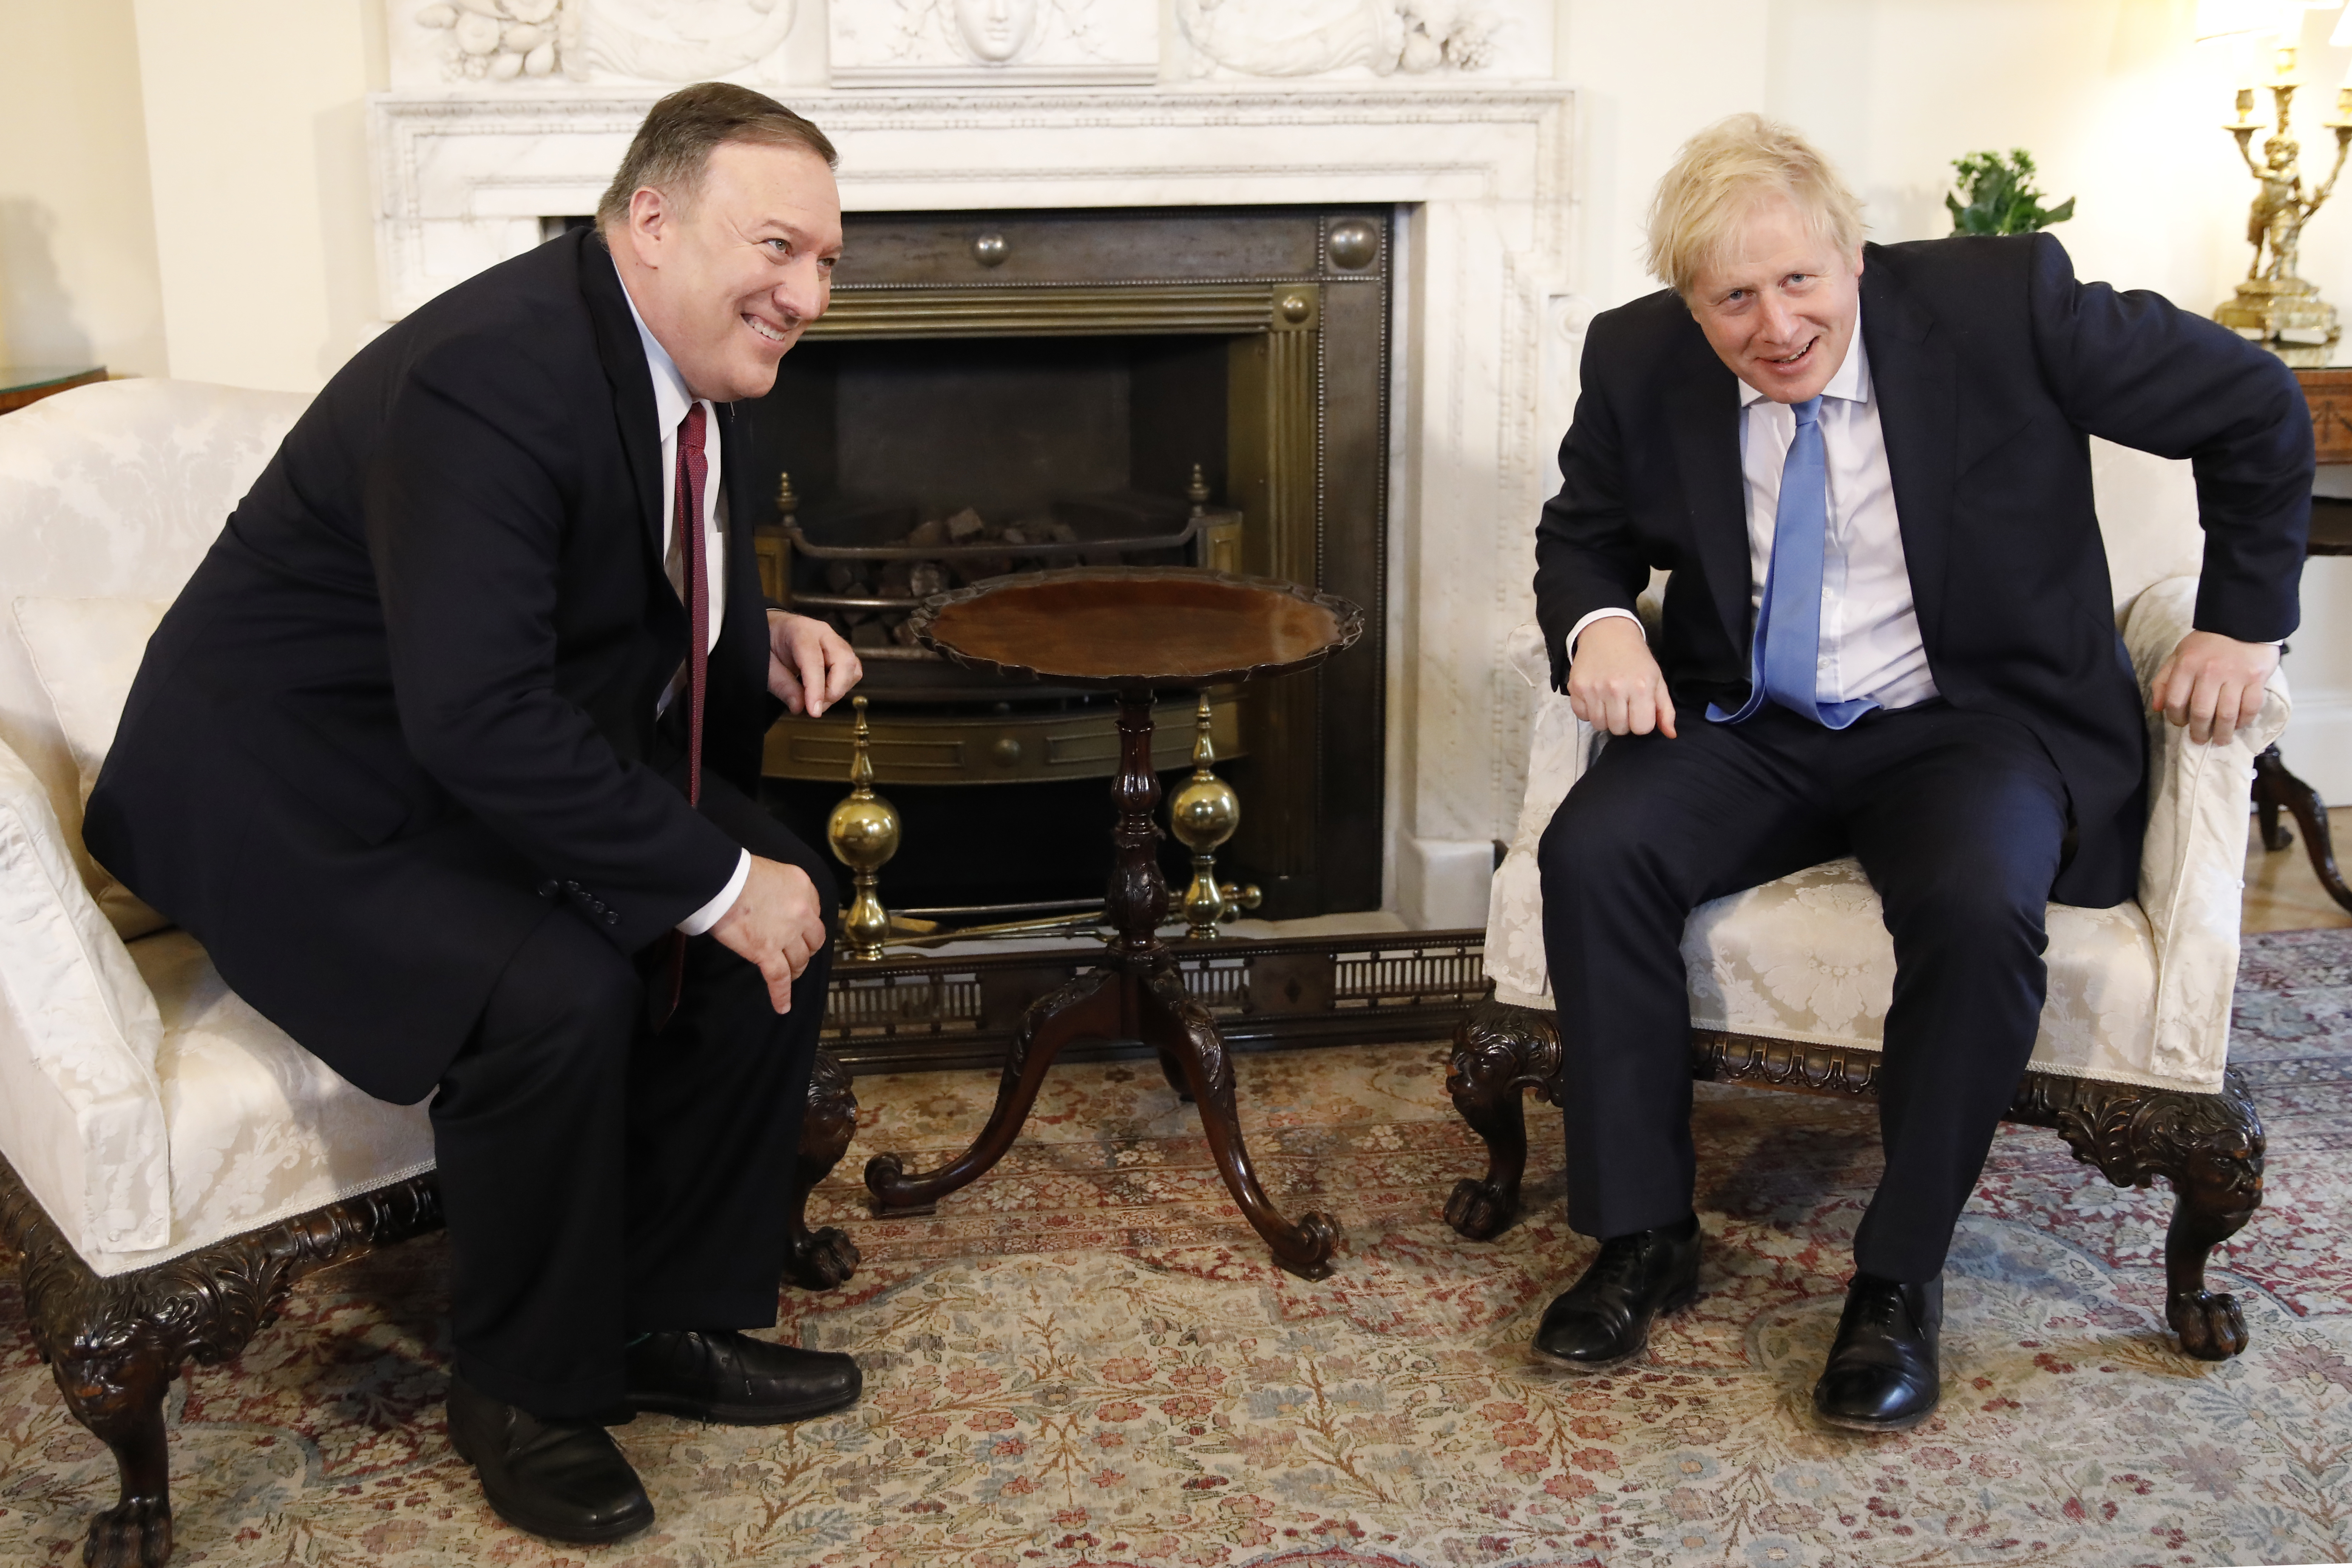 The U.S. Secretary of State Mike Pompeo on a two-day visit to the U.K to discuss a number of issues including the role of Huawei in British 5G Networks (Photo by Tolga Akmen– WPA Pool/Getty Images)